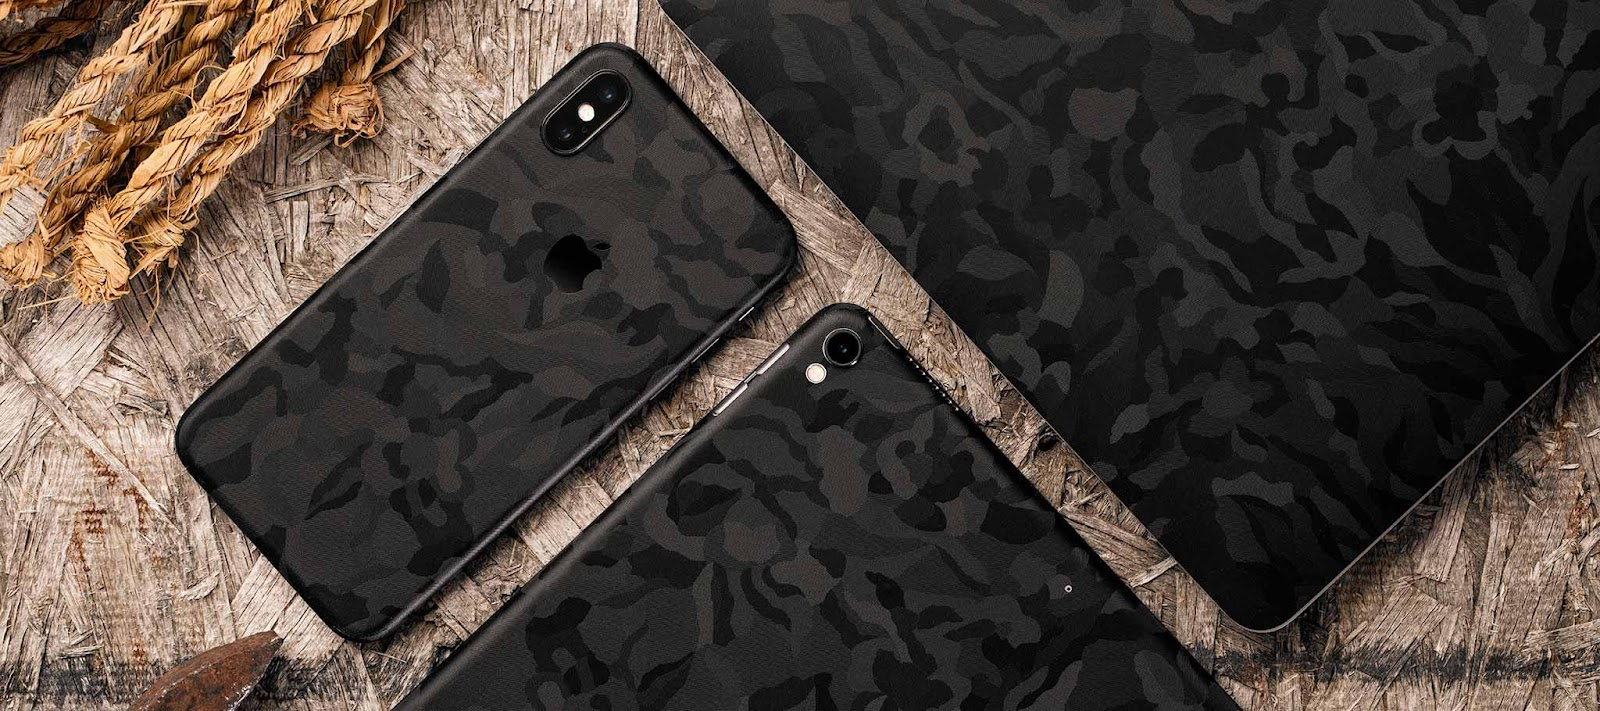 Image result for iphone x dbrand black camo